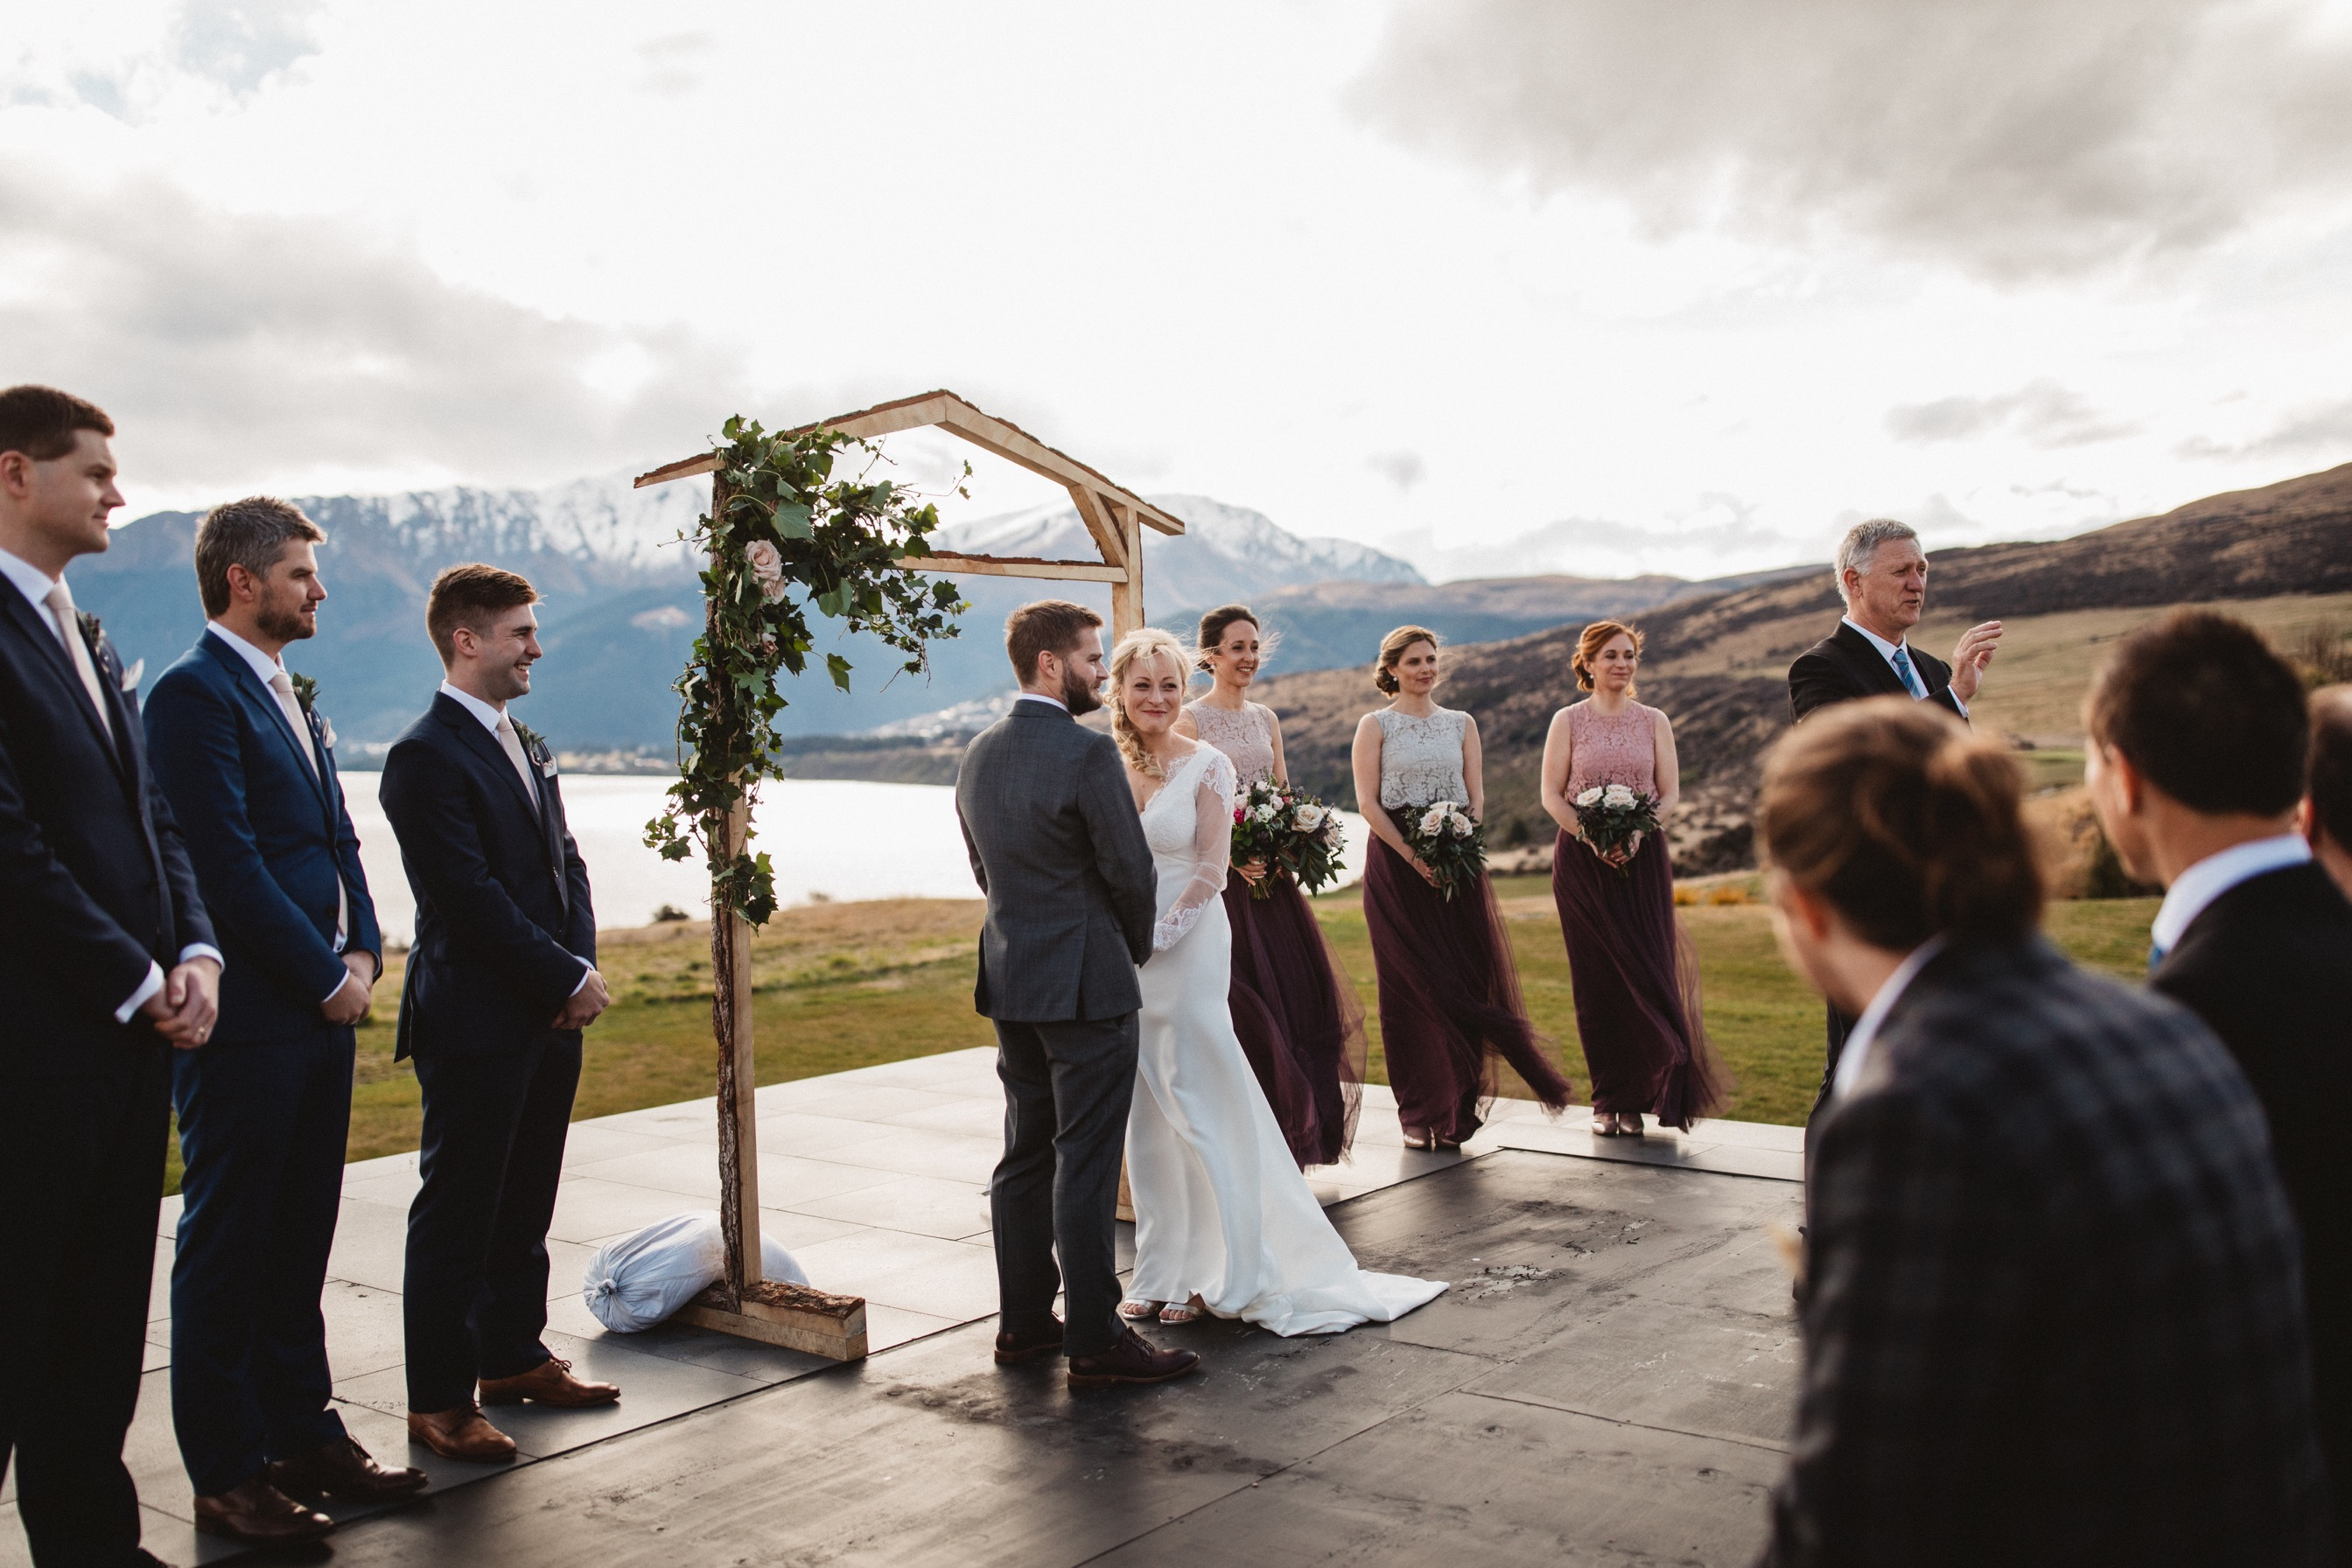 jacks point wedding ceremony in winter